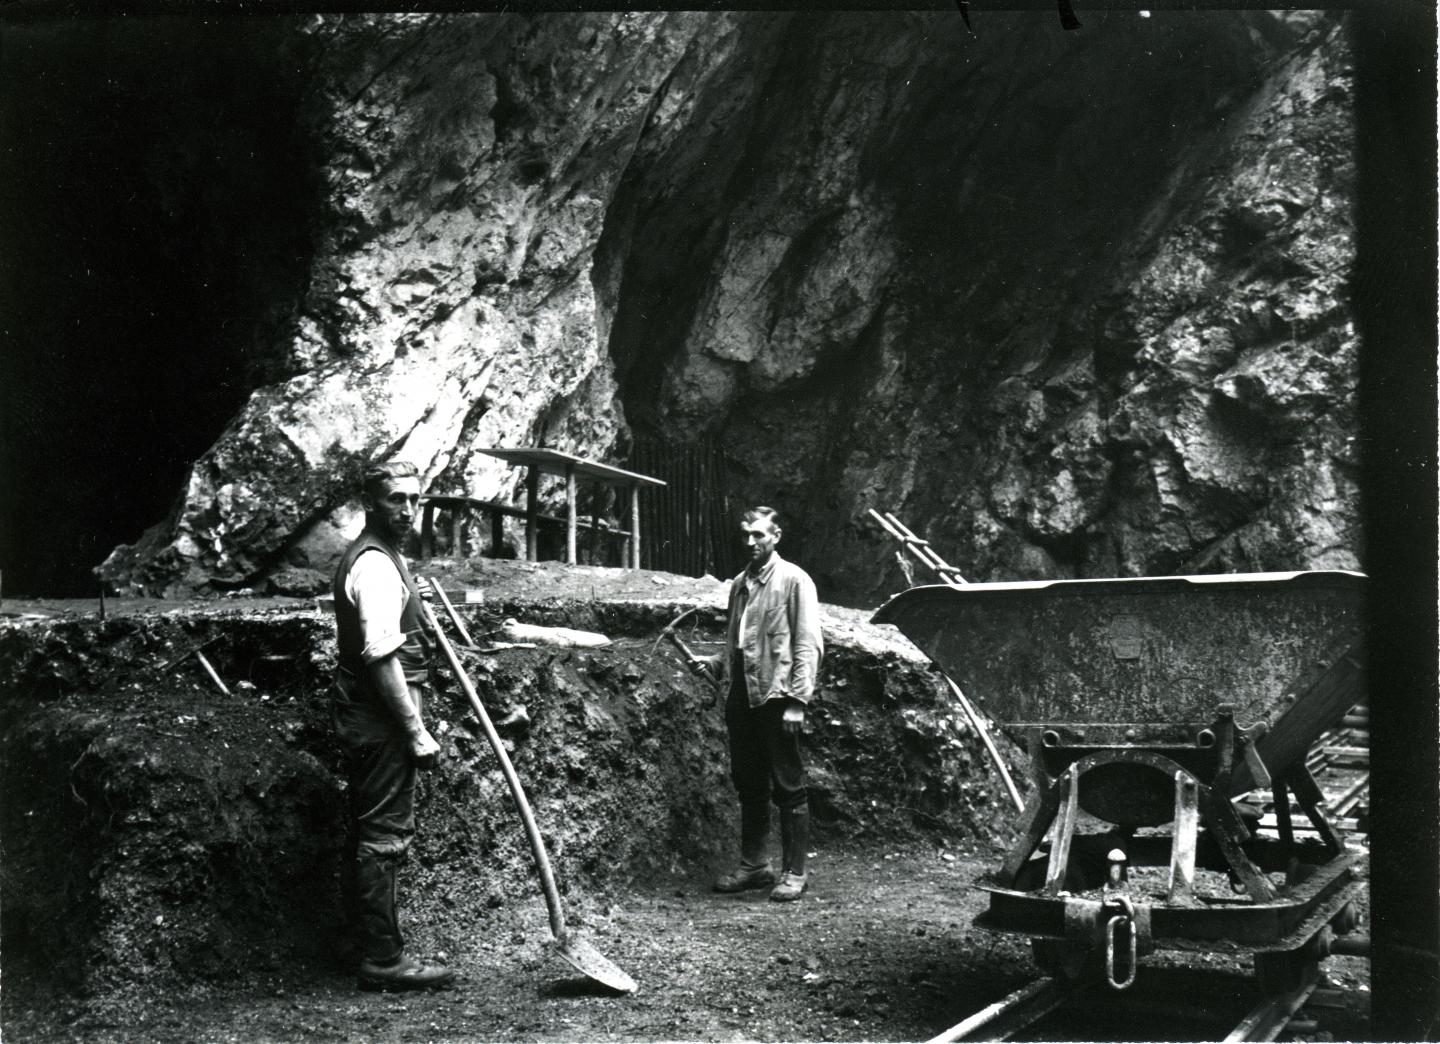 Excavations at Hohlenstein-Stadel Cave in 1937